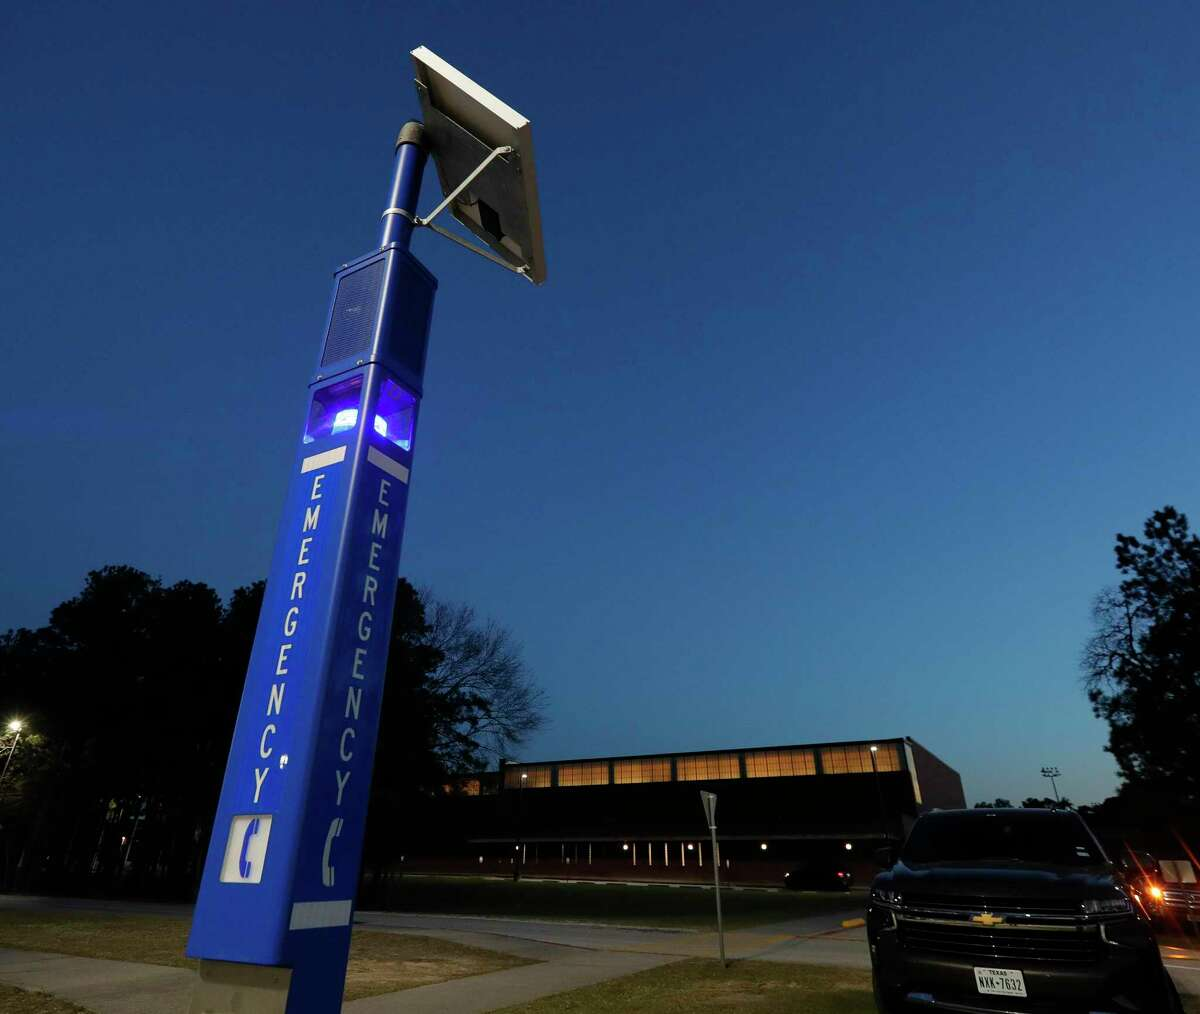 An emergency call tower is seen near the student parking lot at The Woodlands High School, Tuesday, Feb. 2, 2020, in The Woodlands. Emergency towers were placed on all high school and ninth grade campuses, along with other security upgrades as part of a $1 million grant from the Texas Education Agency.